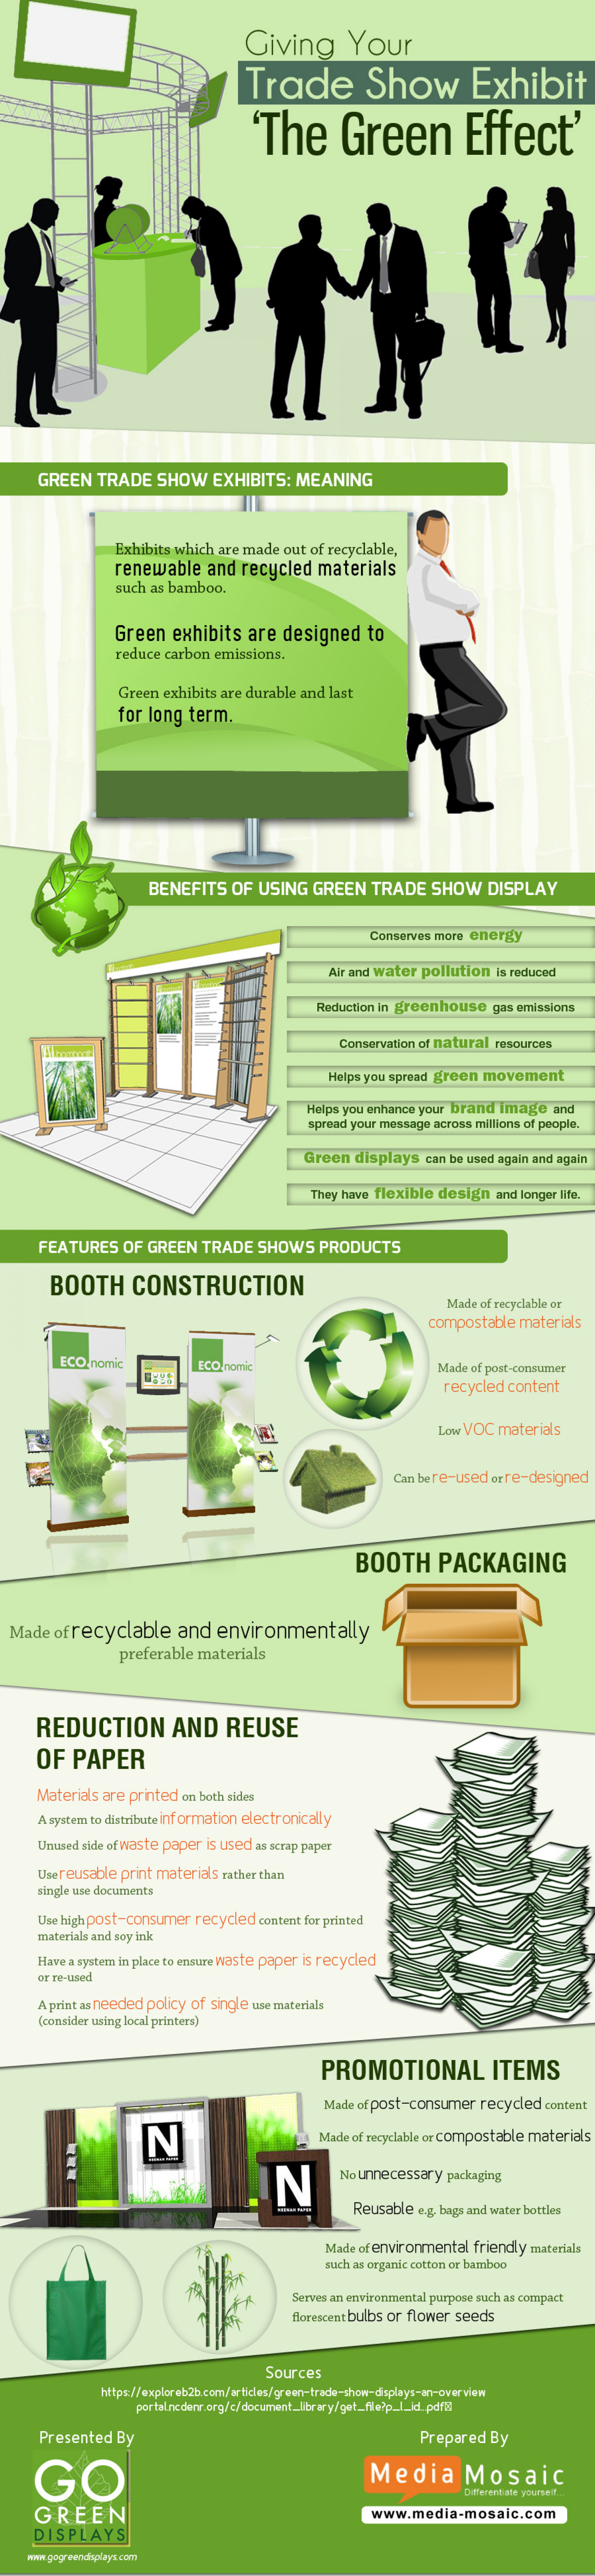 Giving Your Trade Show Exhibit 'The Green Effect' Infographic